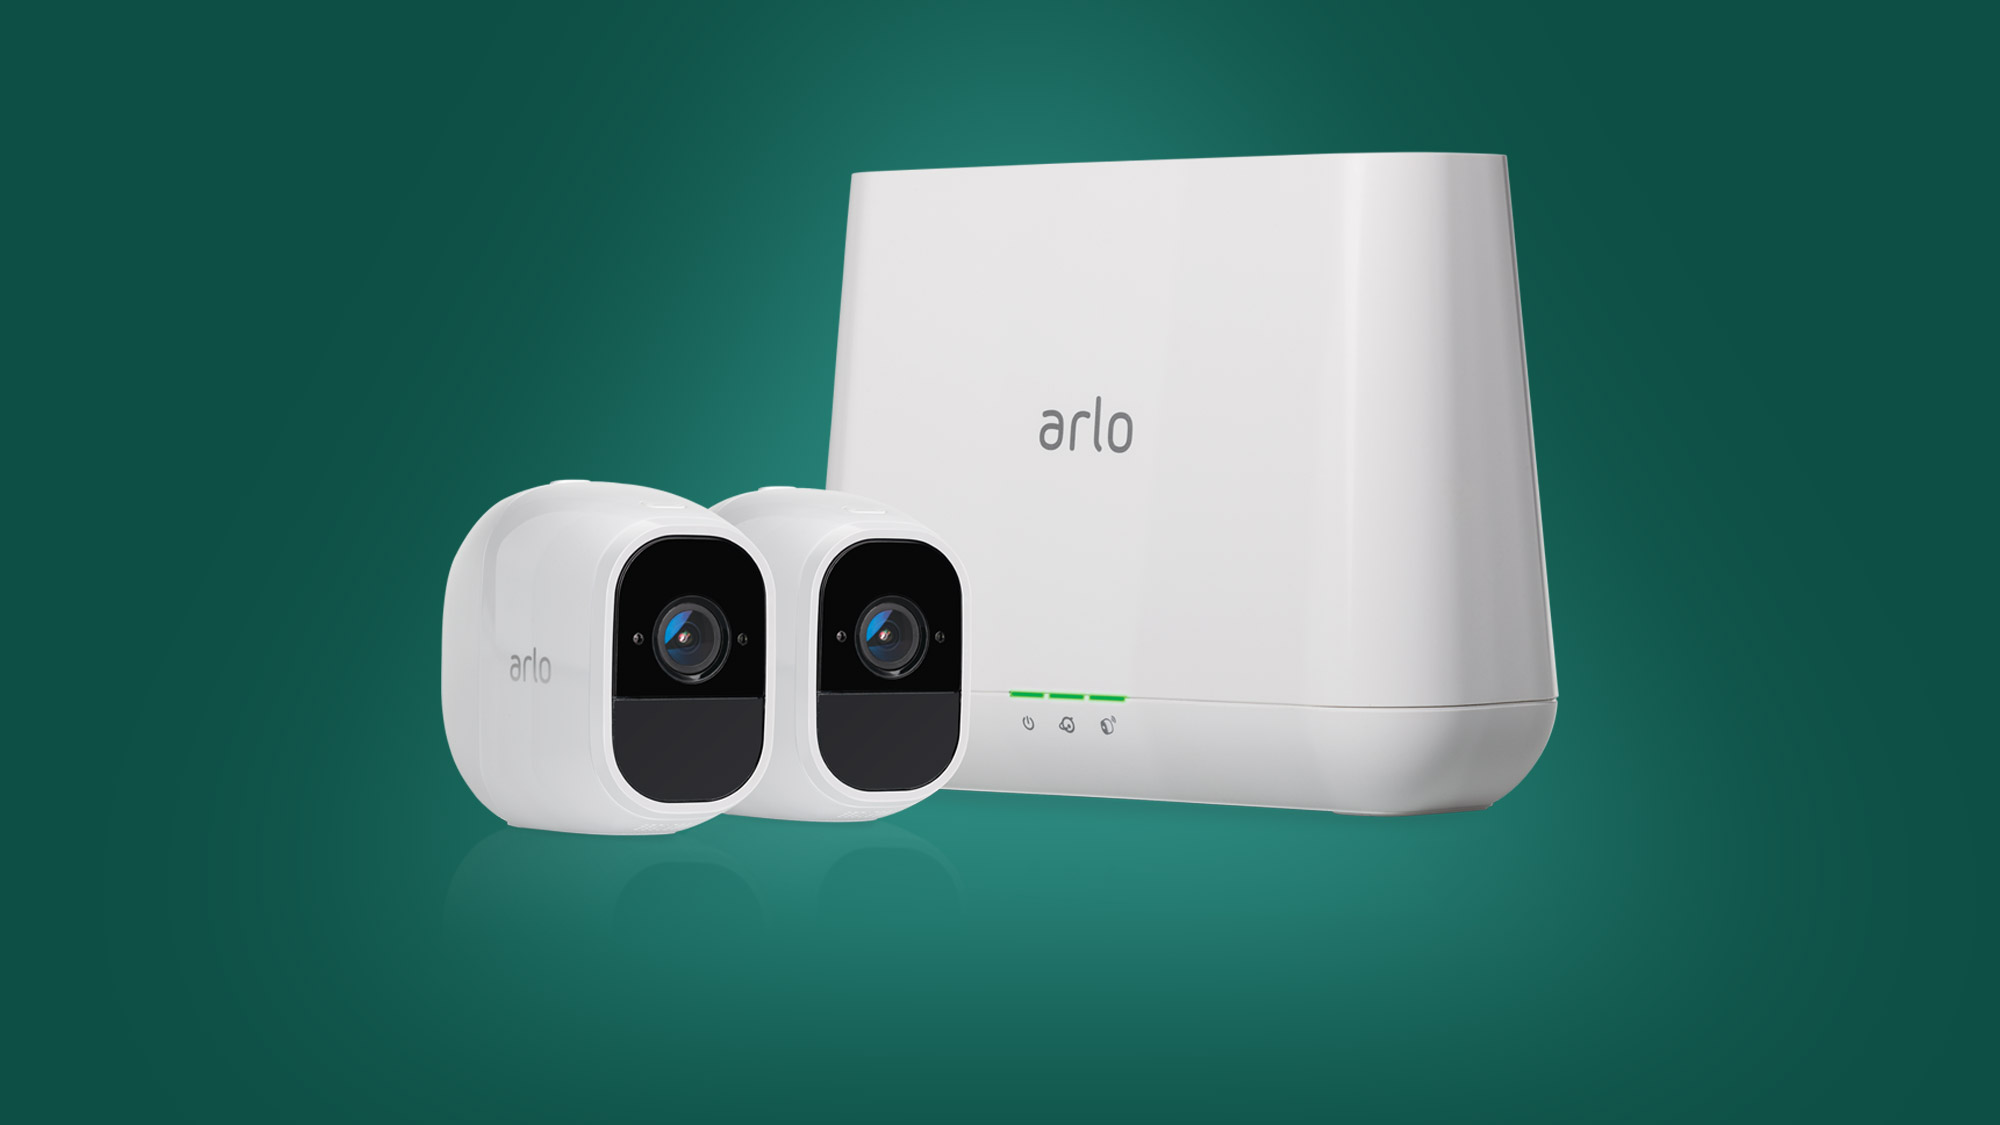 The Best Netgear Arlo Deals Lowest Prices For Black Friday And Cyber Monday 2020 Techradar